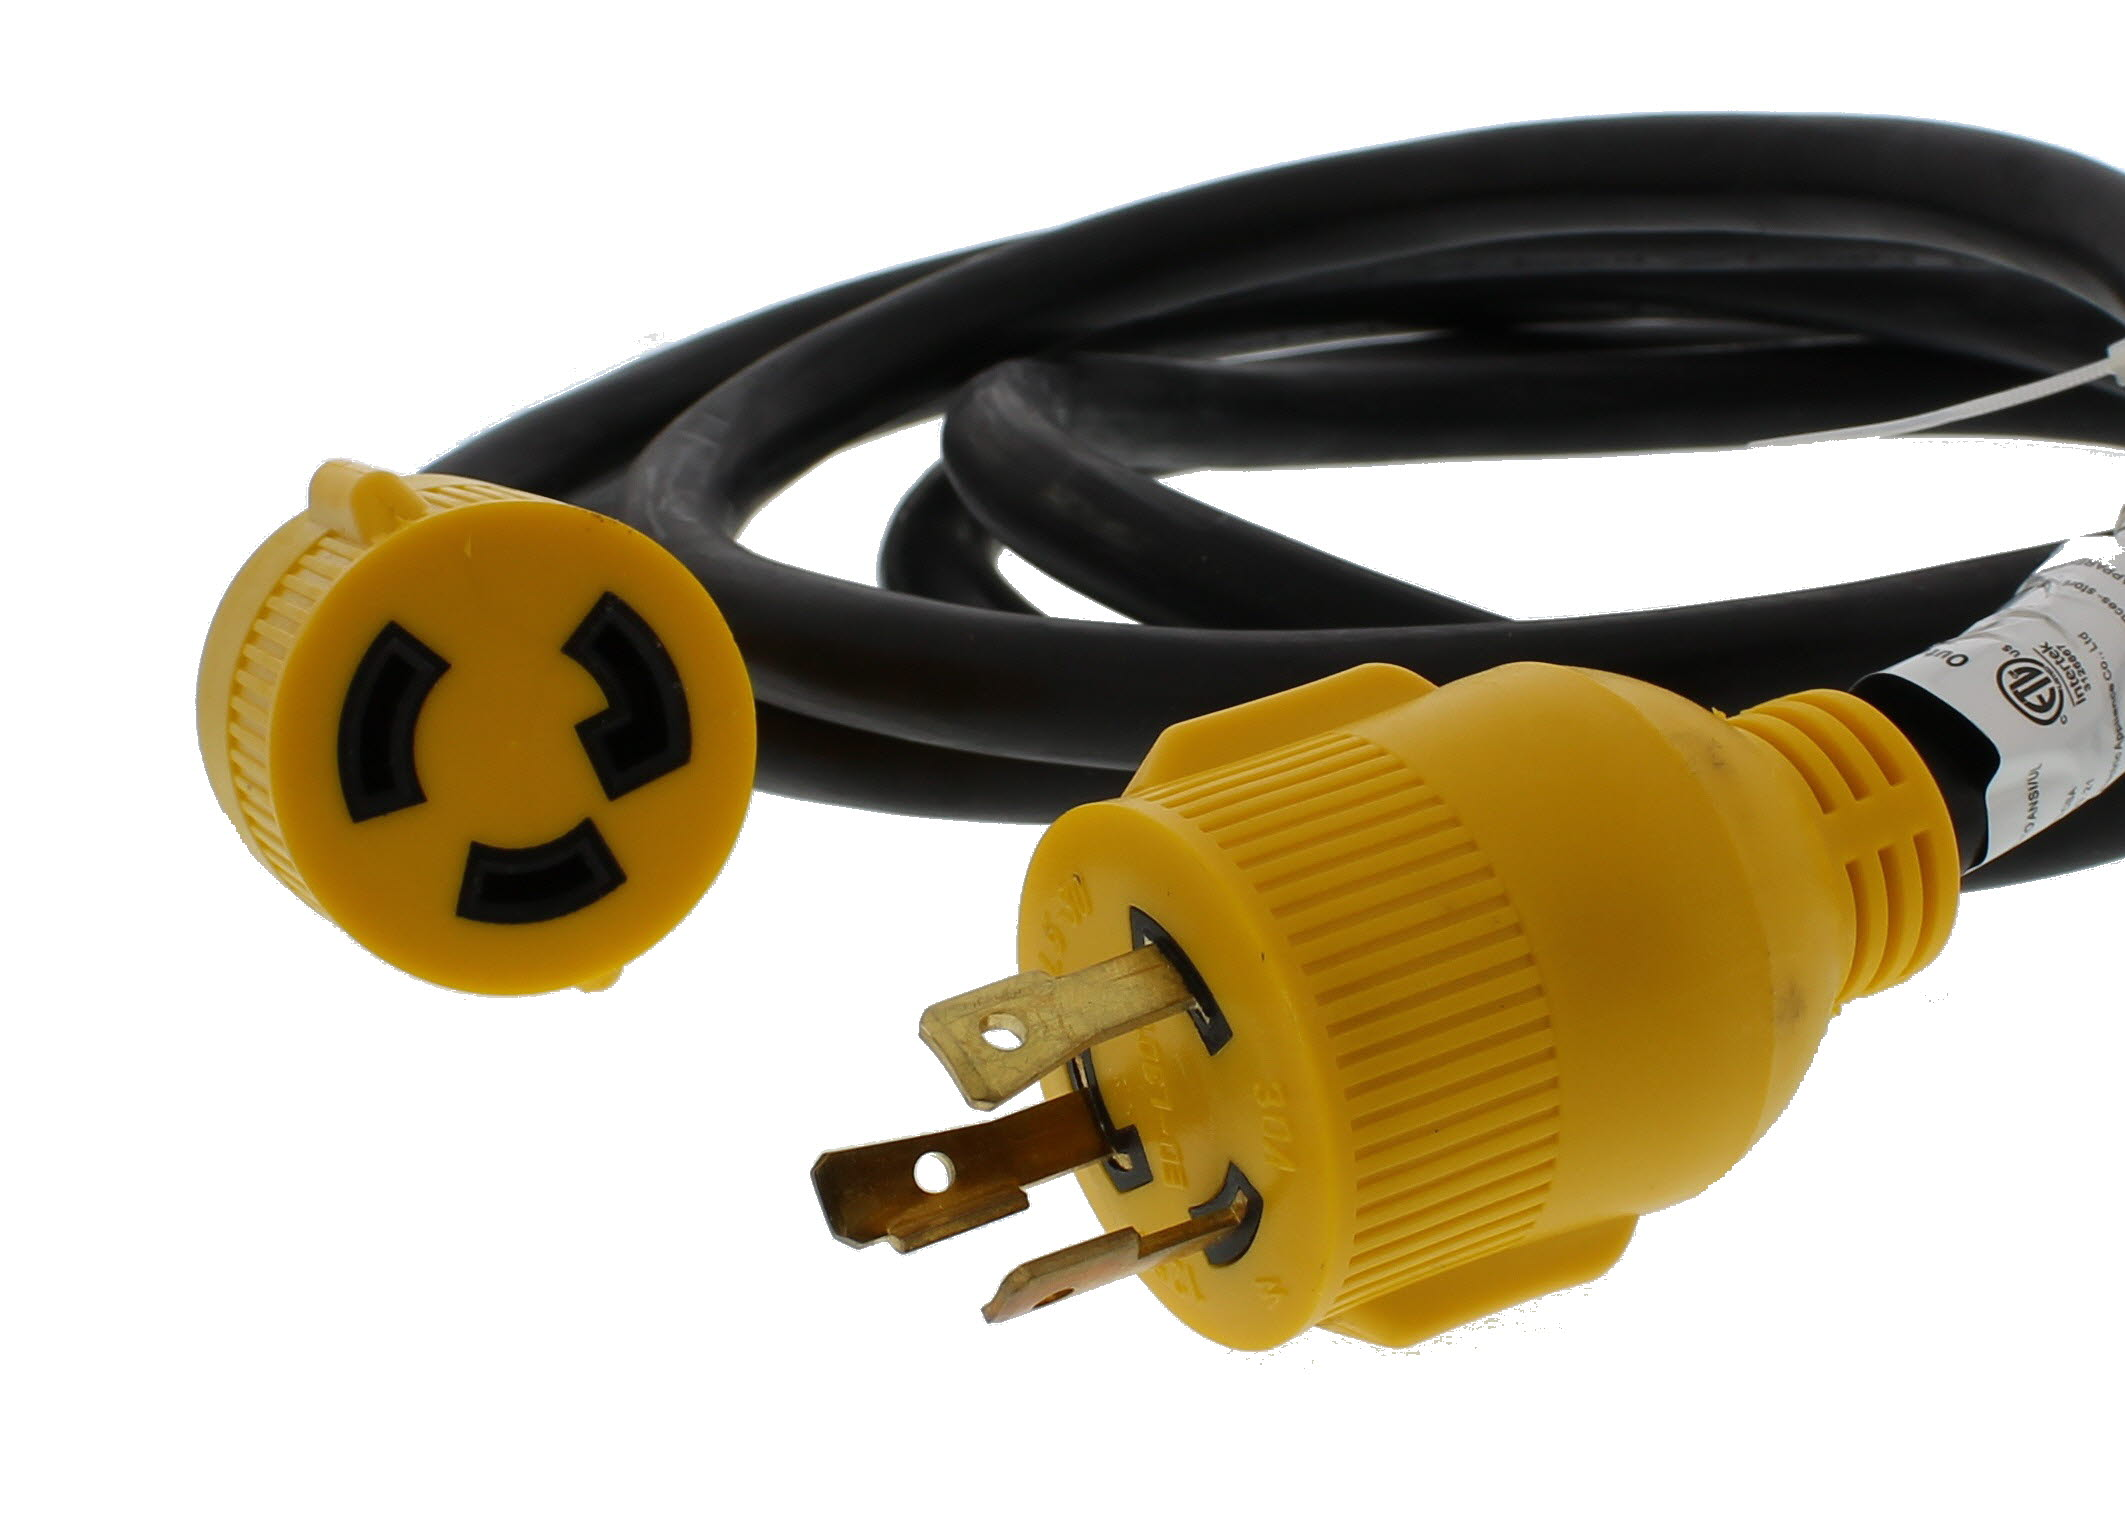 3 Prong Generator Cord : Abn amp stw volt prong generator industrial